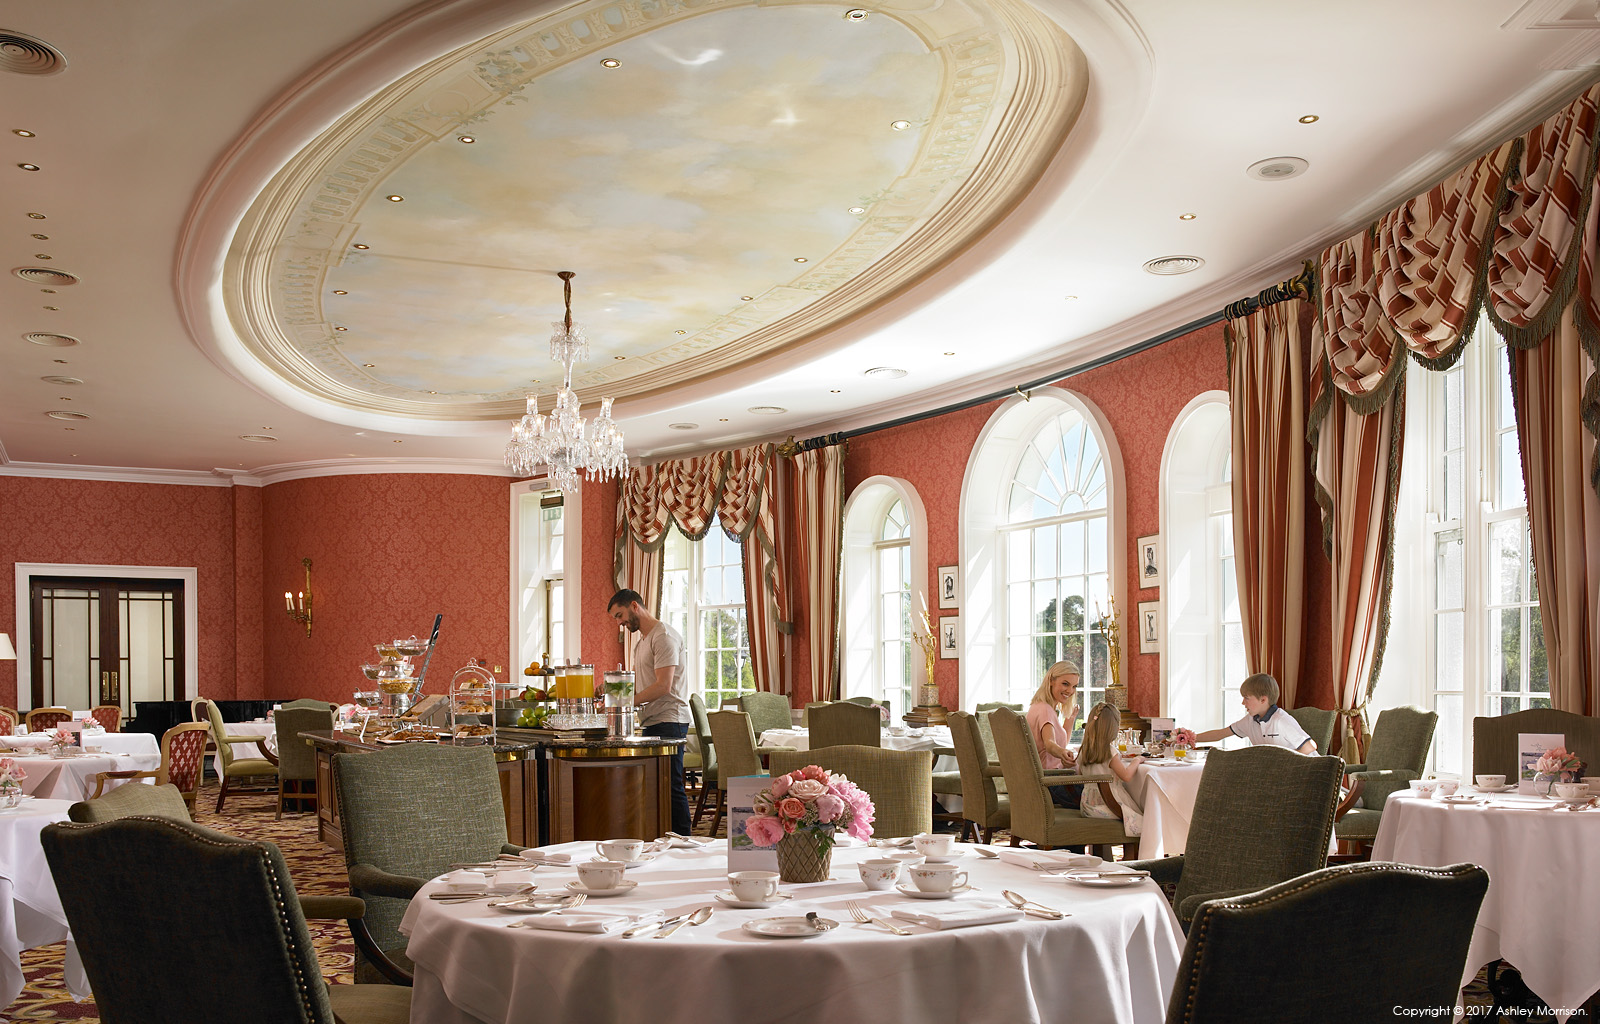 The River Room Restaurant at the Kildare Hotel, Spa & Country Club in County Kildare.